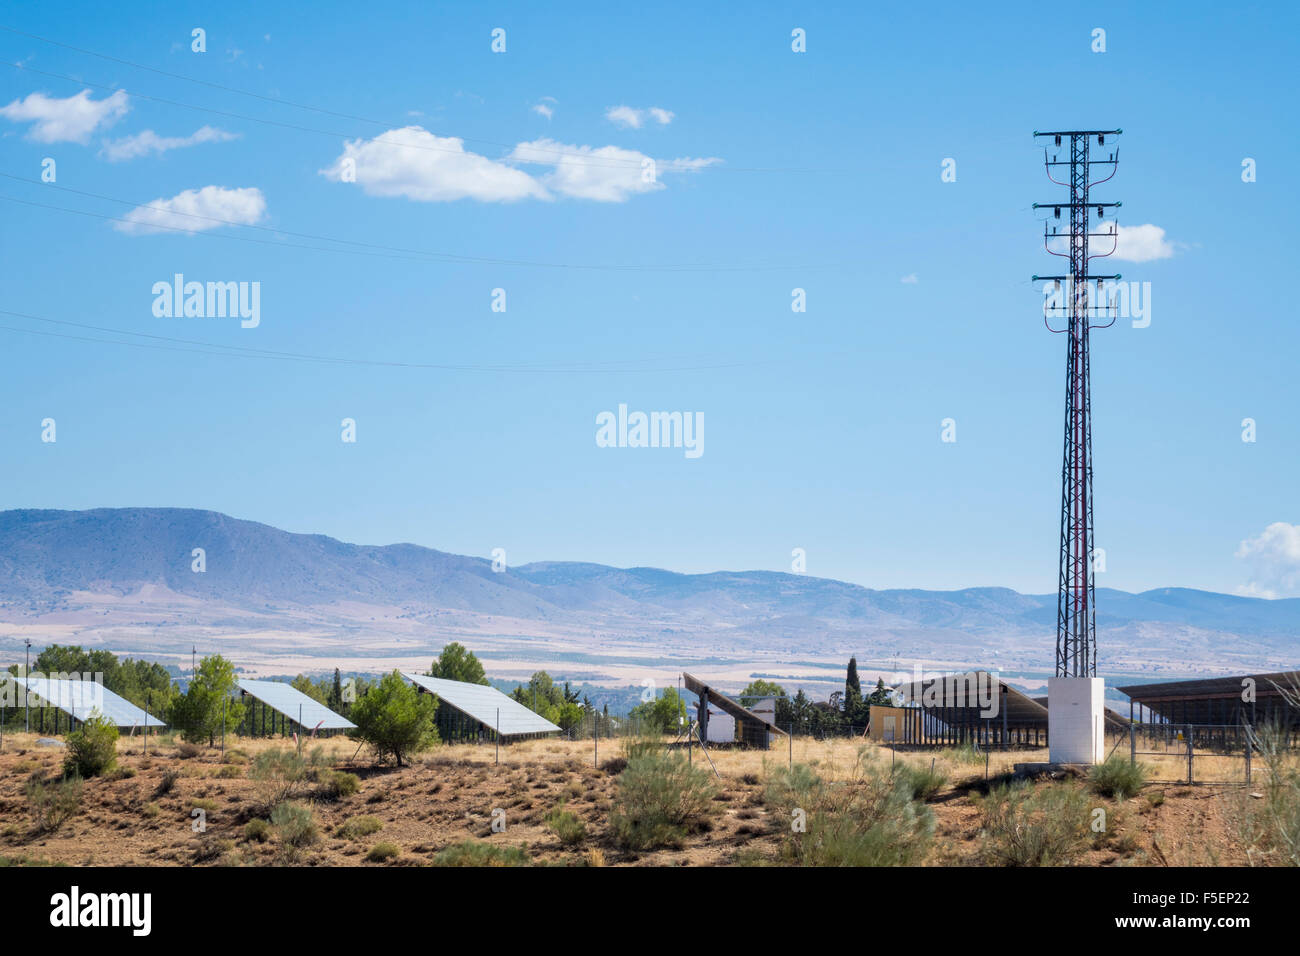 Row of solar panels and electricity pylon at at solar farm in Southern Spain - Stock Image